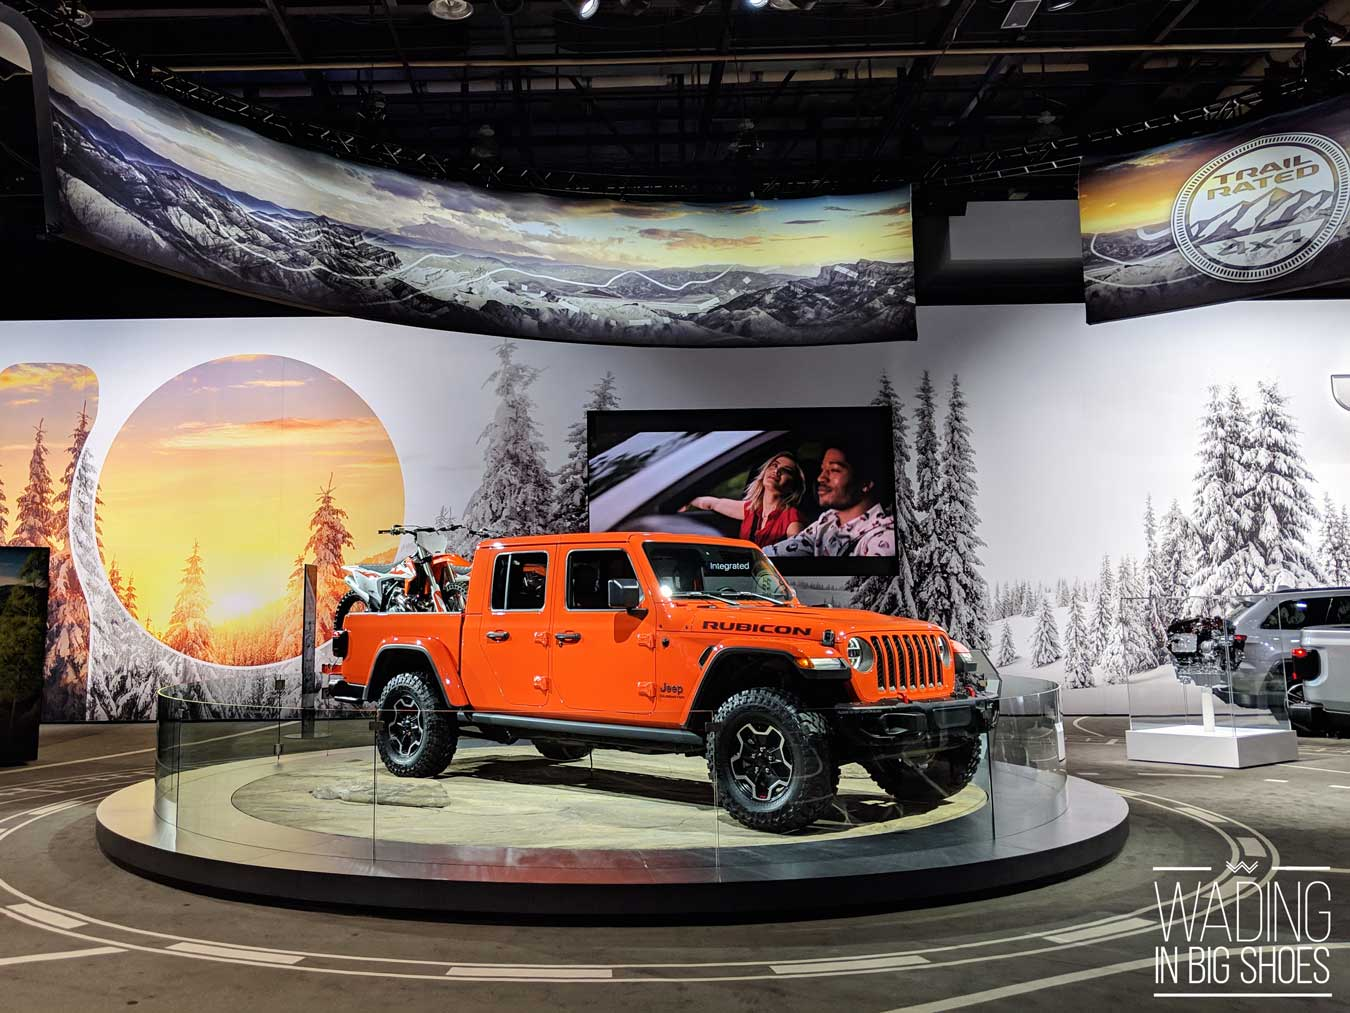 Detroit Auto Show 2019 Highlights: Must-See Cars + Best Interactive Exhibits